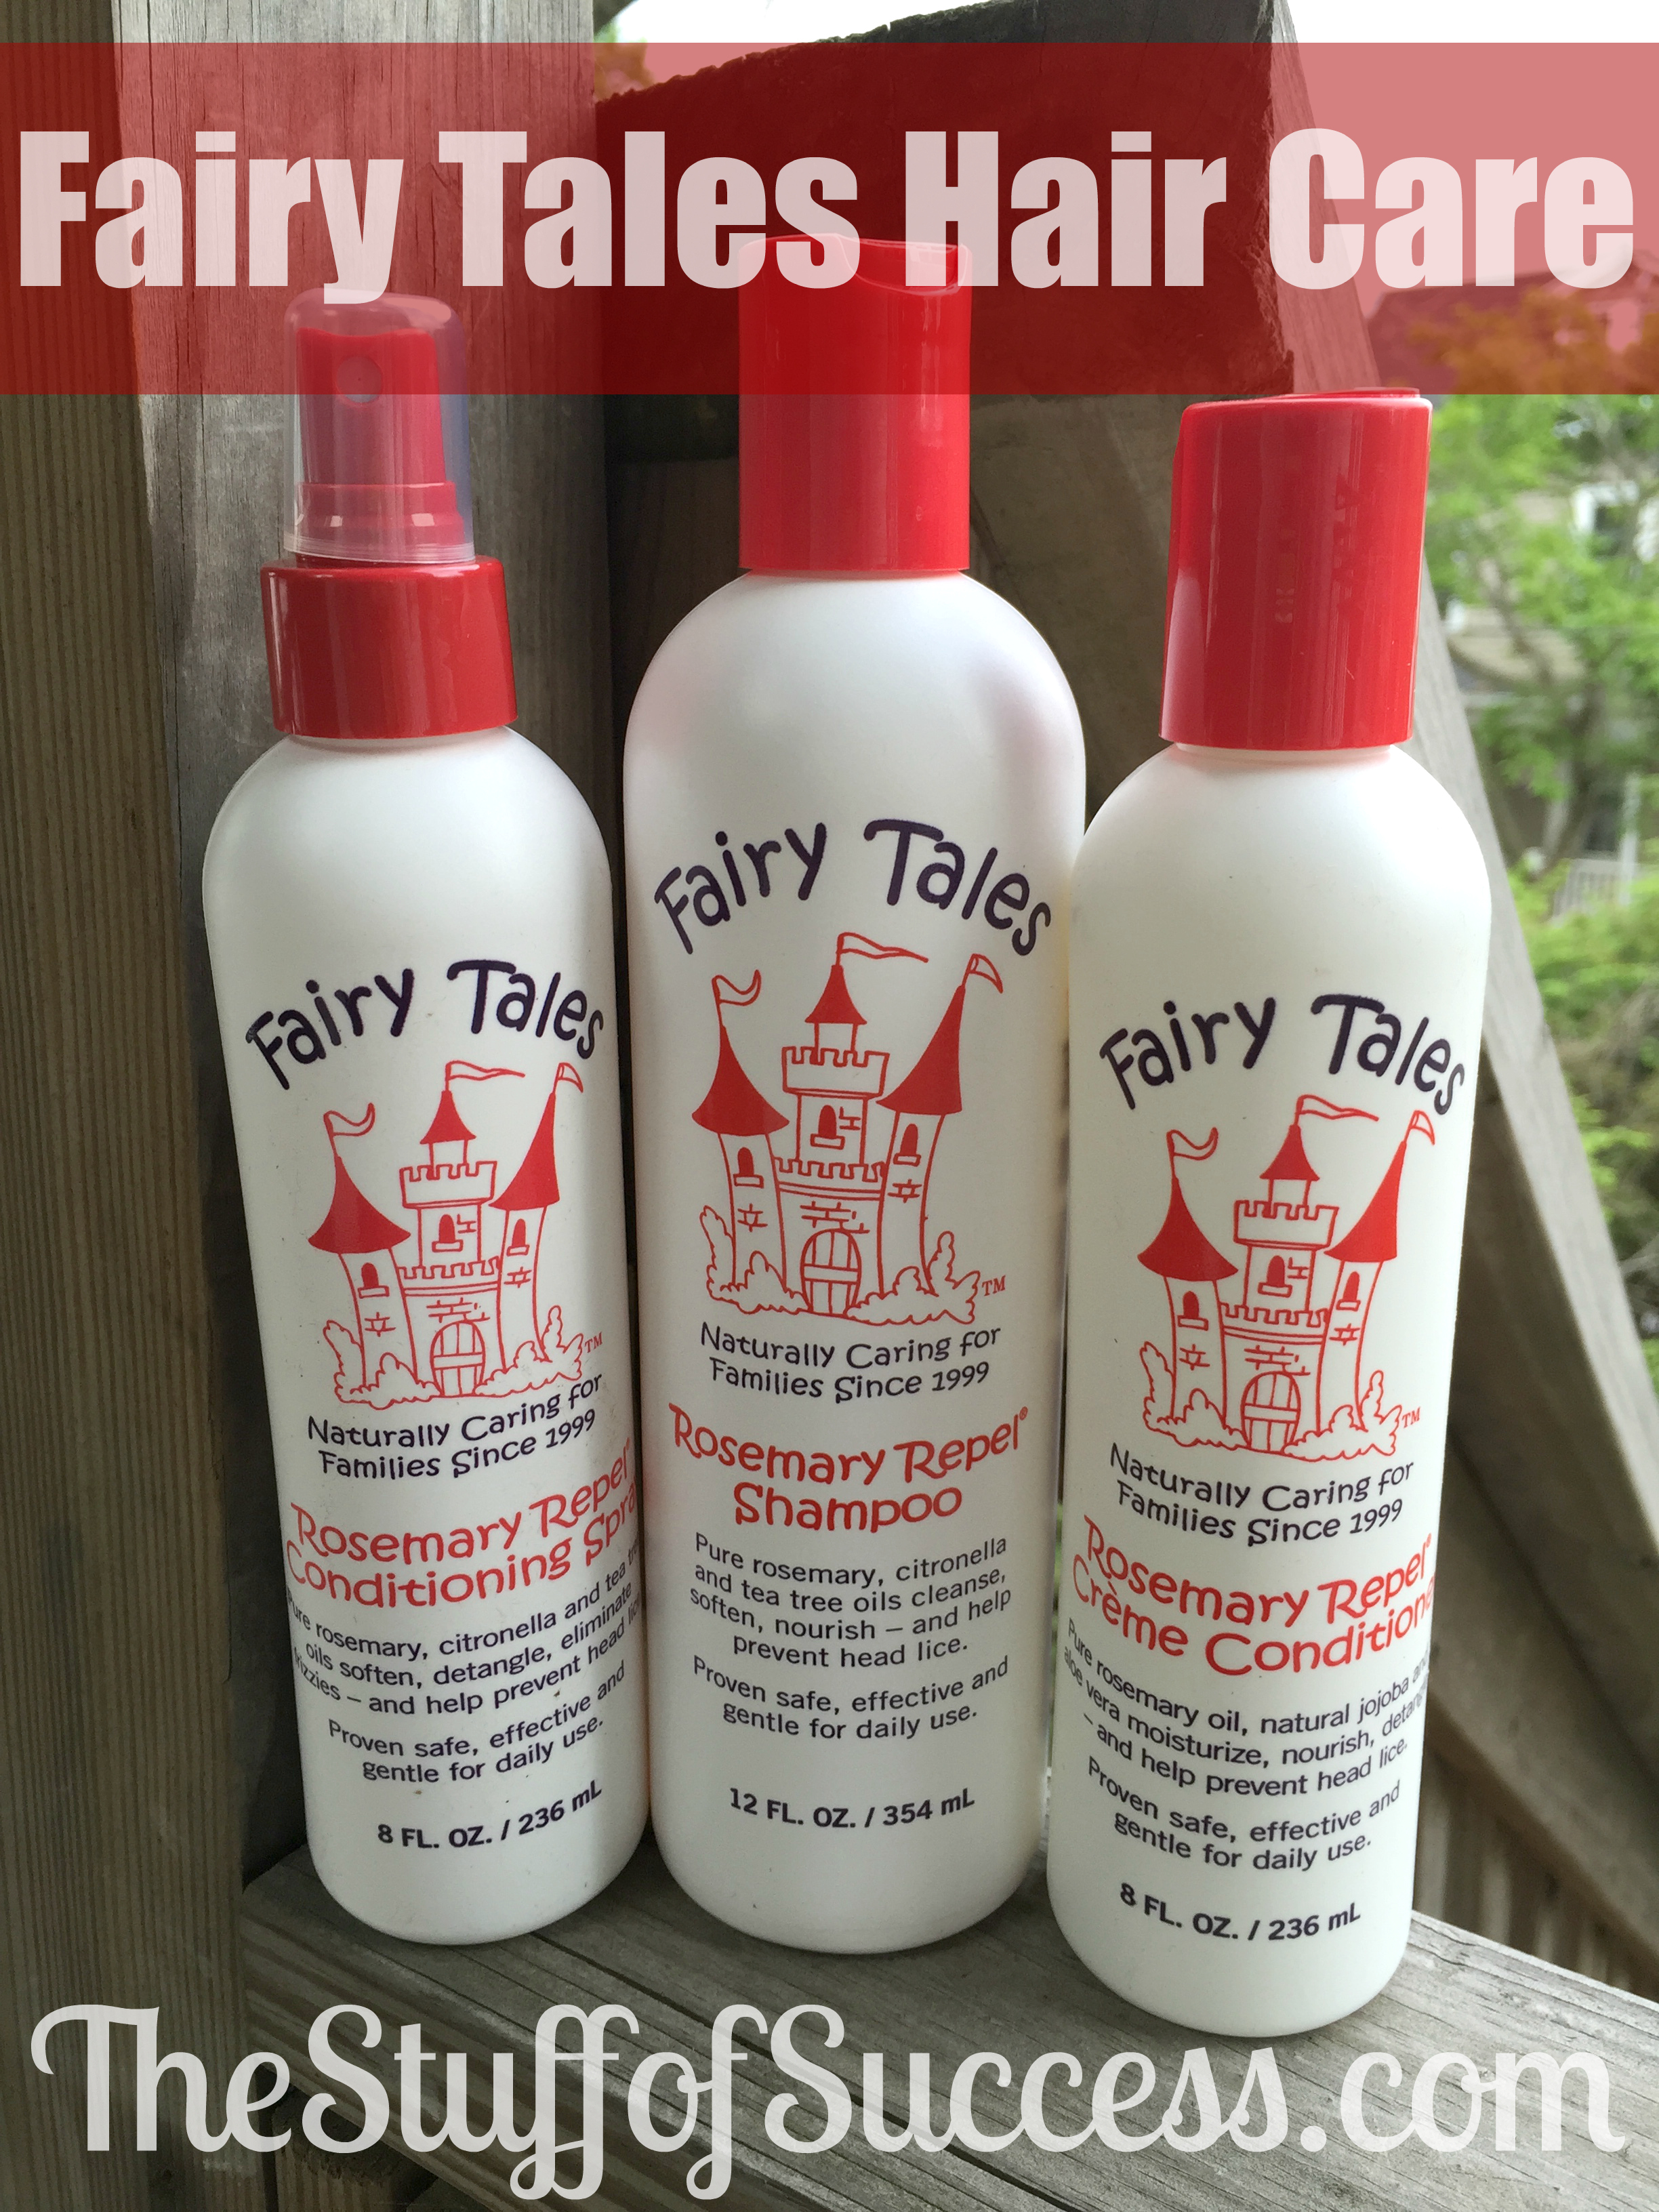 Fairy tales hair care coupon